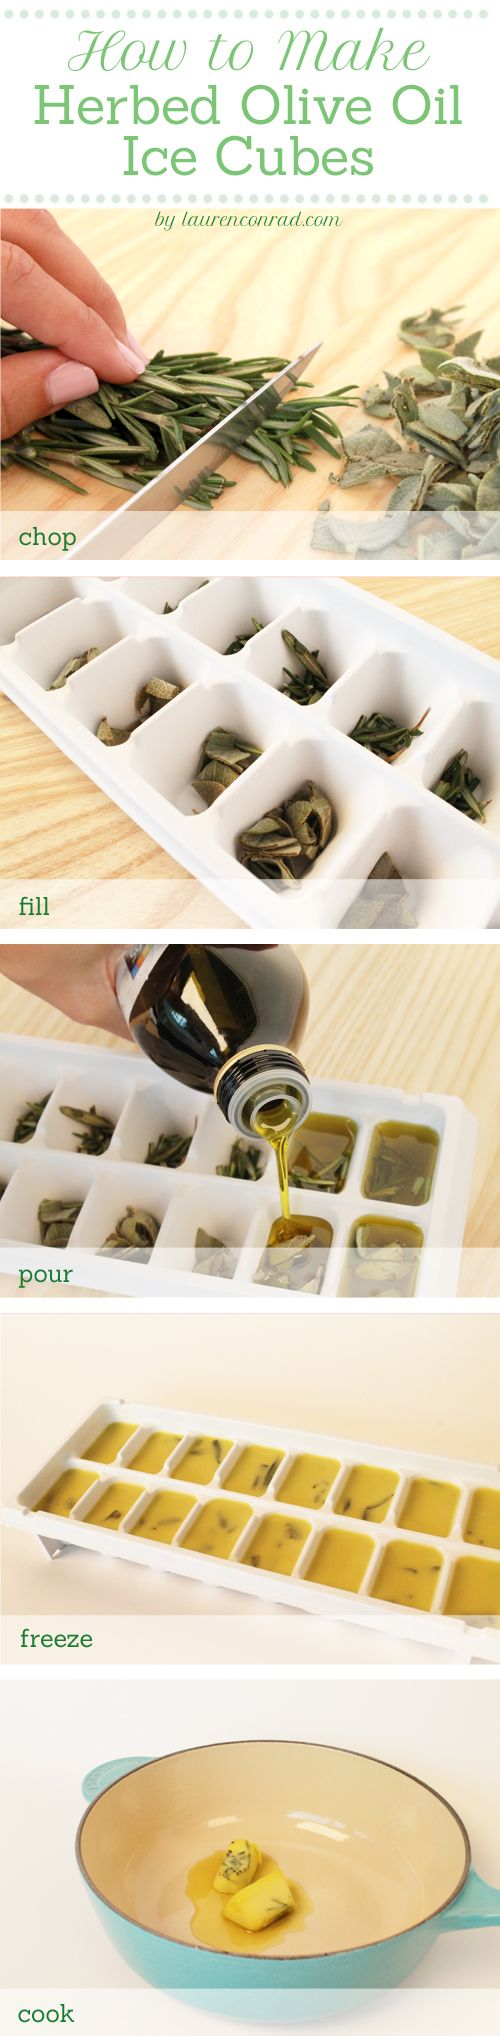 Herbed Olive Oil Cubes